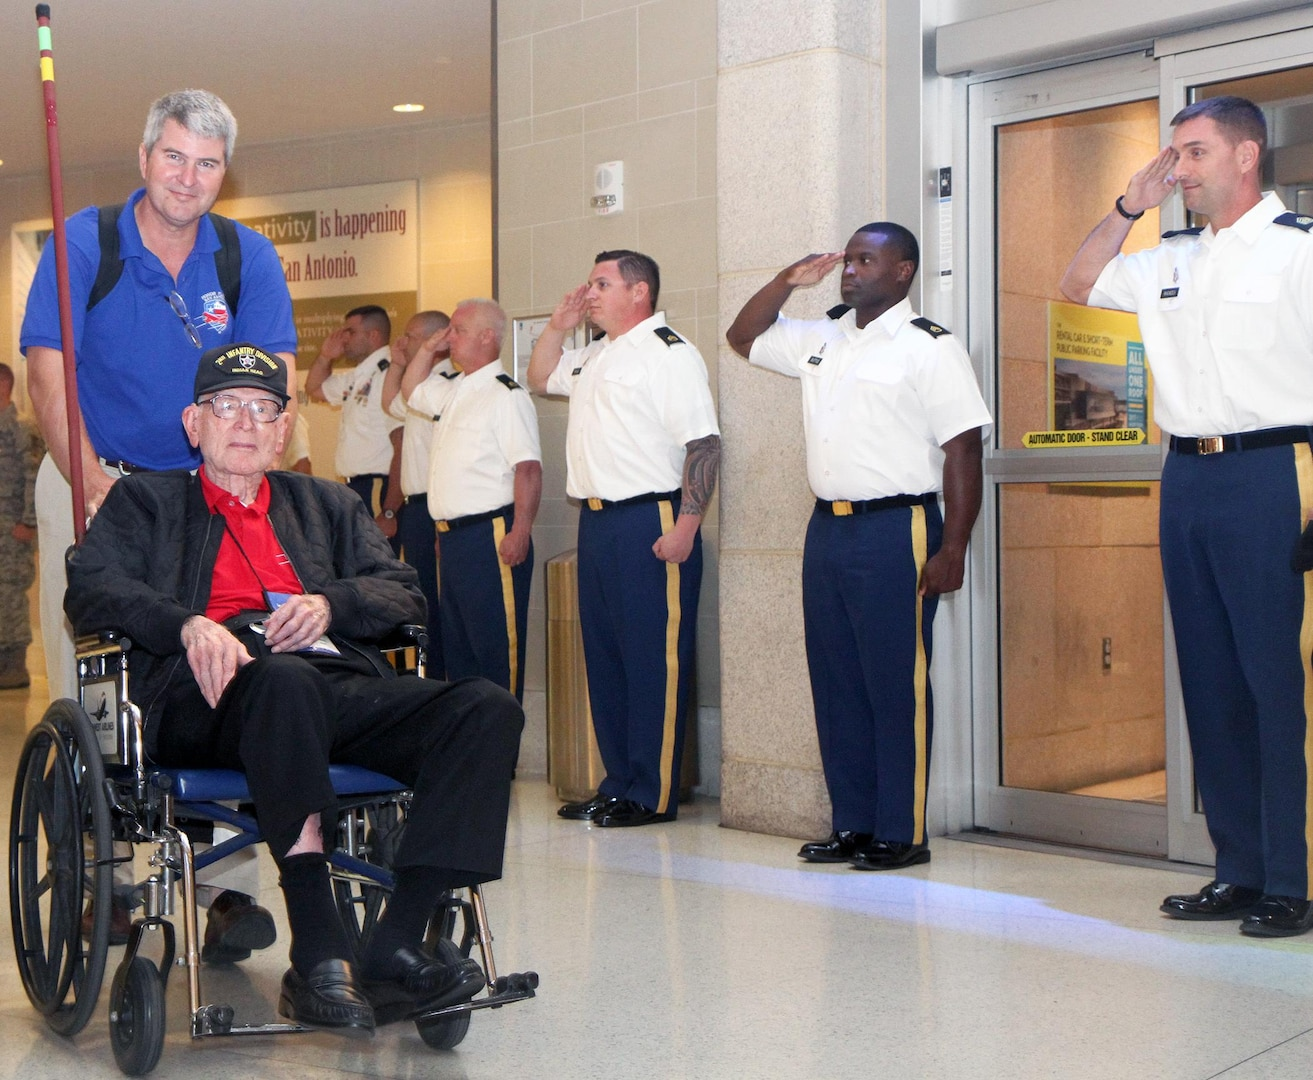 Retired Army Col. Tom Morris is wheeled through the San Antonio International Airport after a late-night return from an honor flight to Washington, D.C. Oct. 3. Morris is a 105-year-old veteran of World War II who fought at Normandy and the Battle of the Bulge.